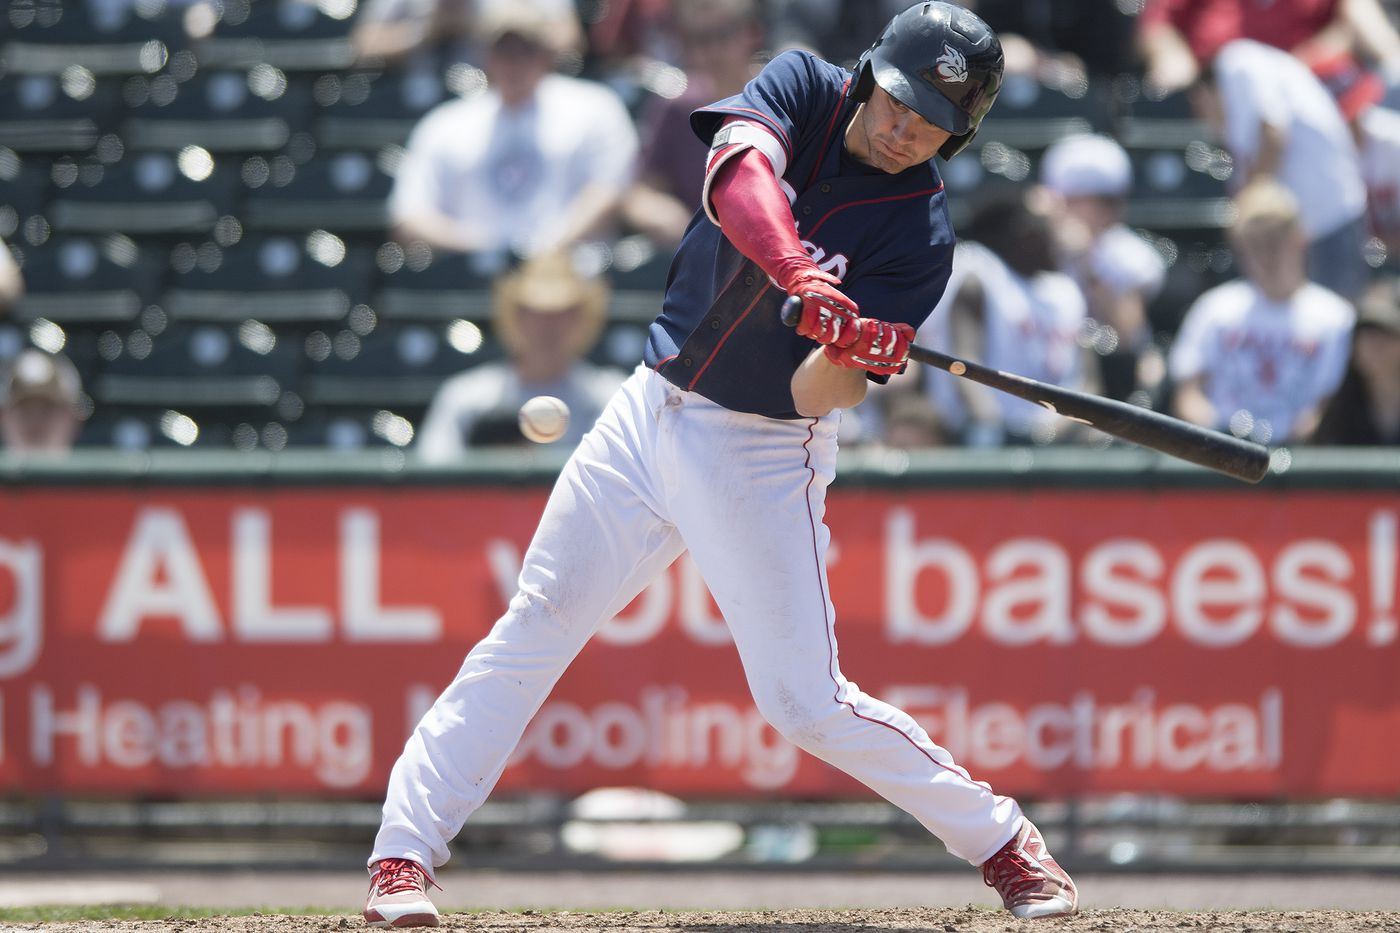 Phillies minor league report: IronPigs cruise past Pawtucket behind Mitch Walding, Collin Cowgill